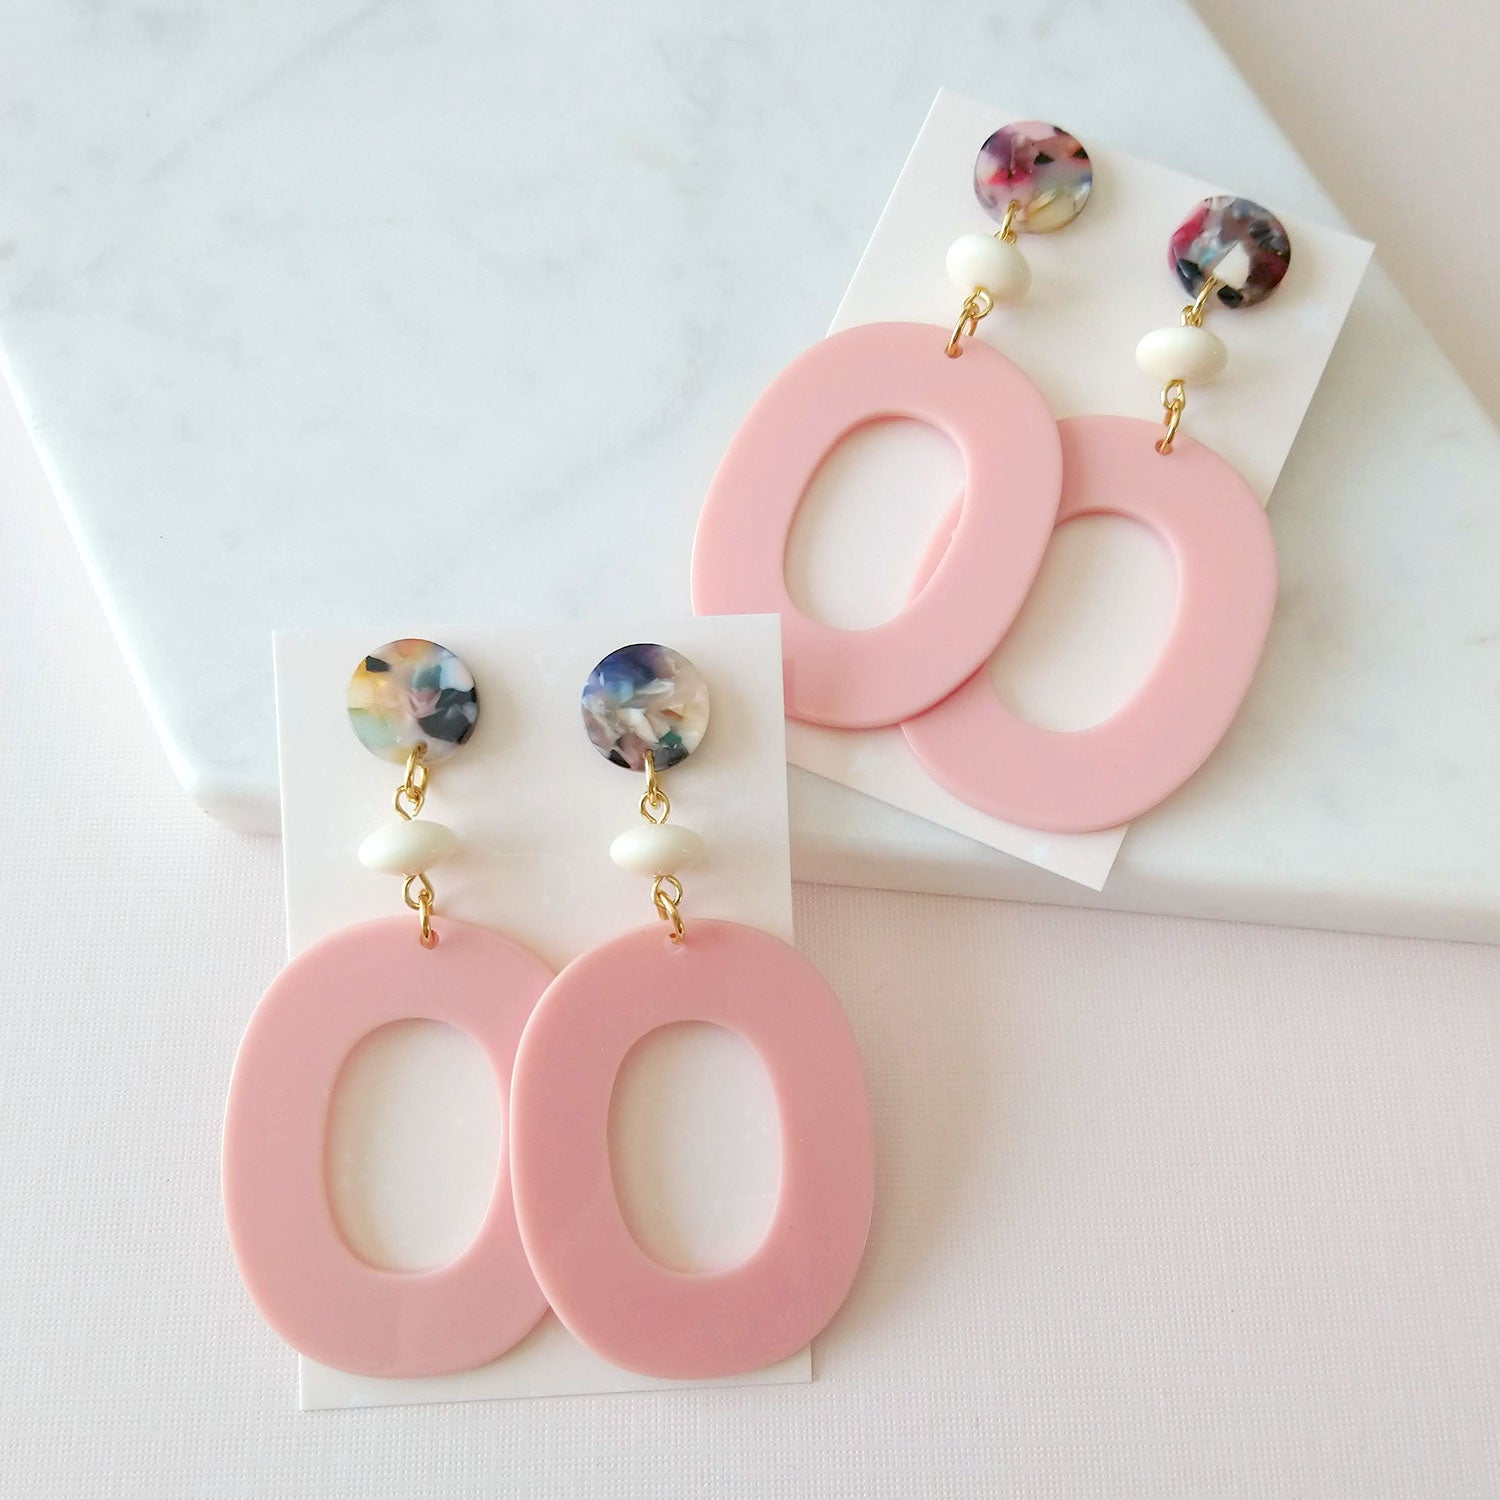 Piston Earrings in pink (SD1428)